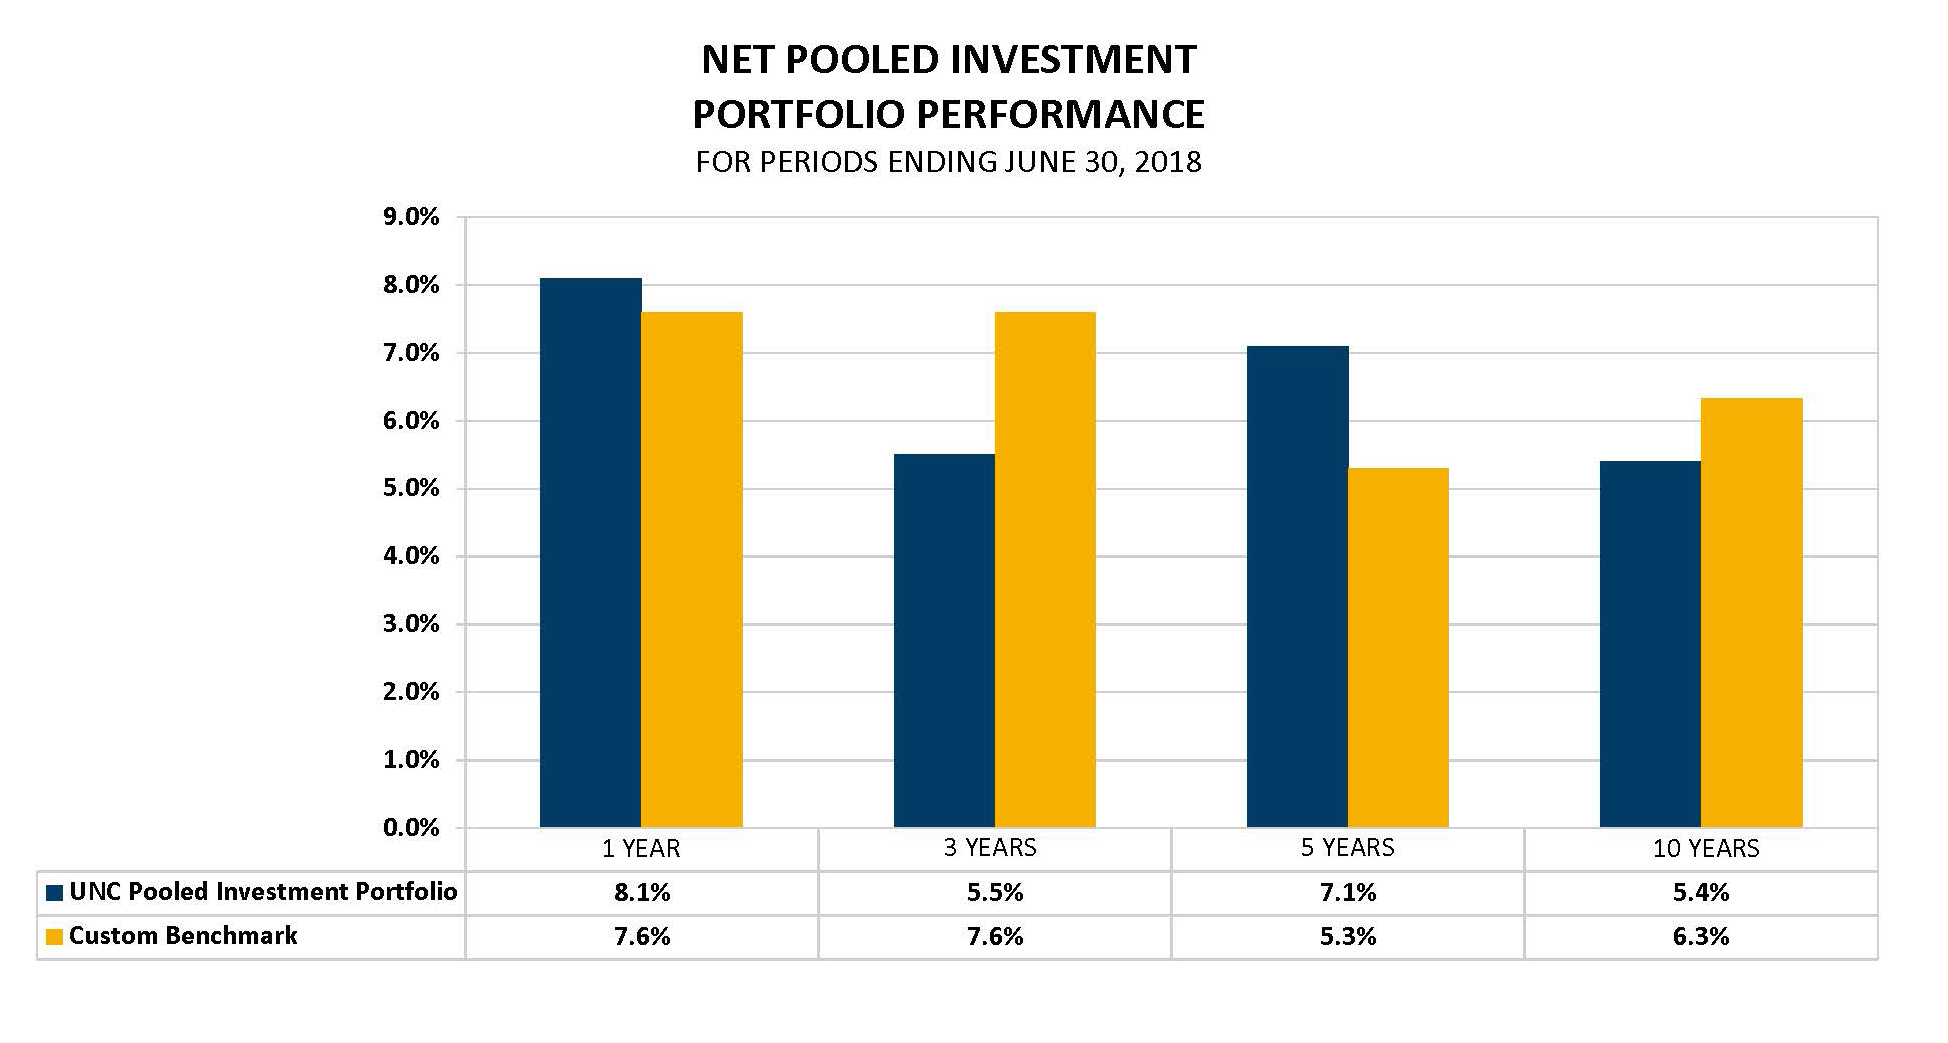 Net Pooled Investment Earnings